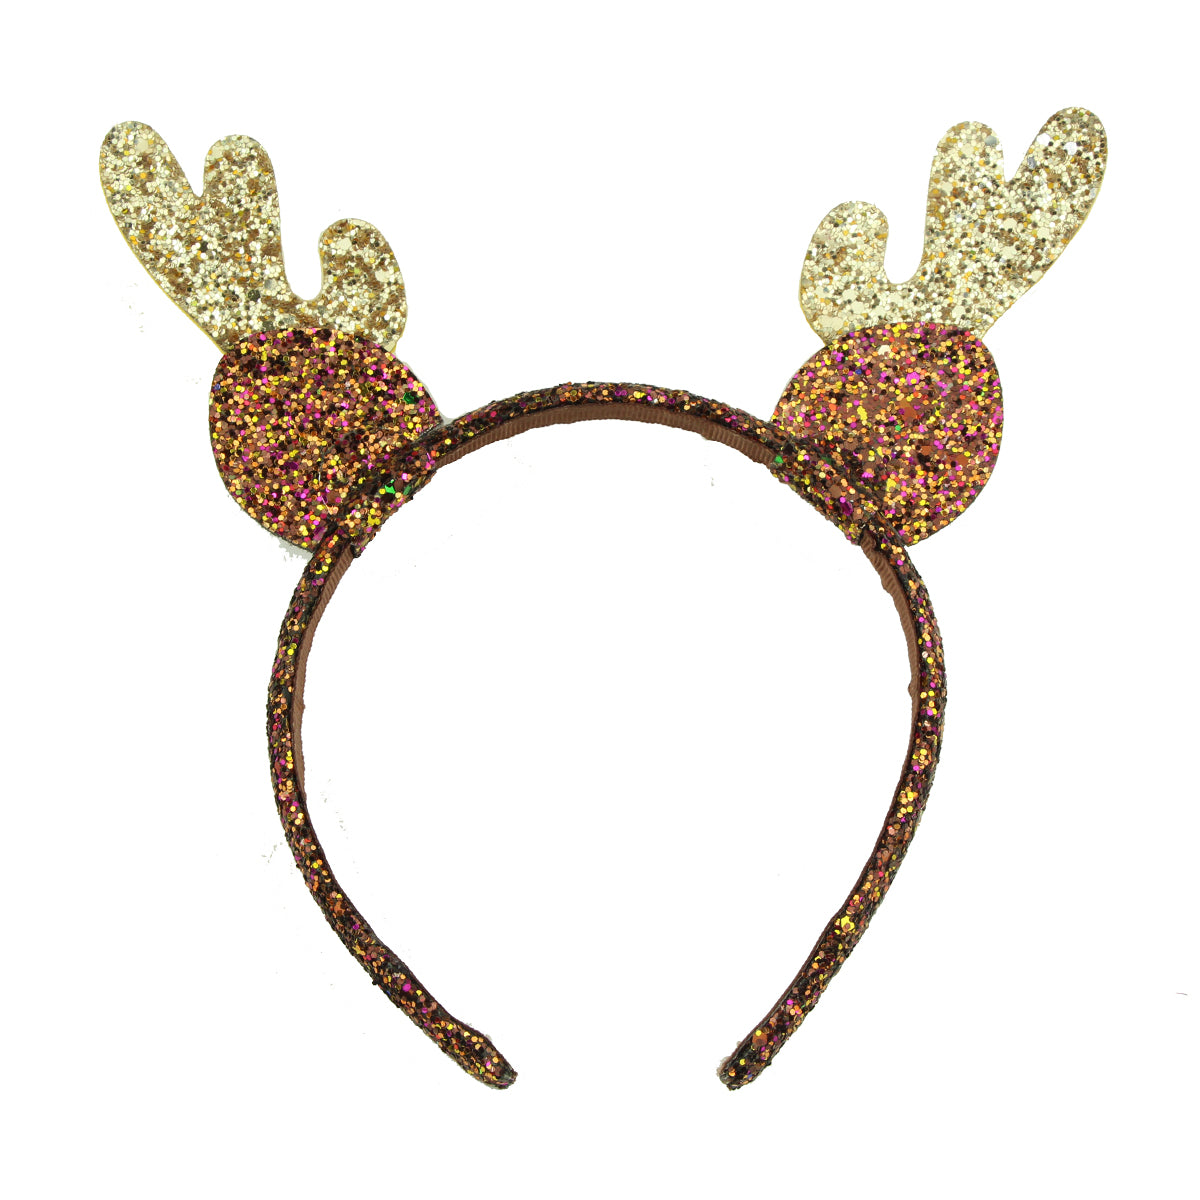 glitter PU leather elf ears hairband teenage girls deer ears headband halloween OX ears headband wholesale from audit supplier5958 - SOHOBUCKS CO.,LIMITED